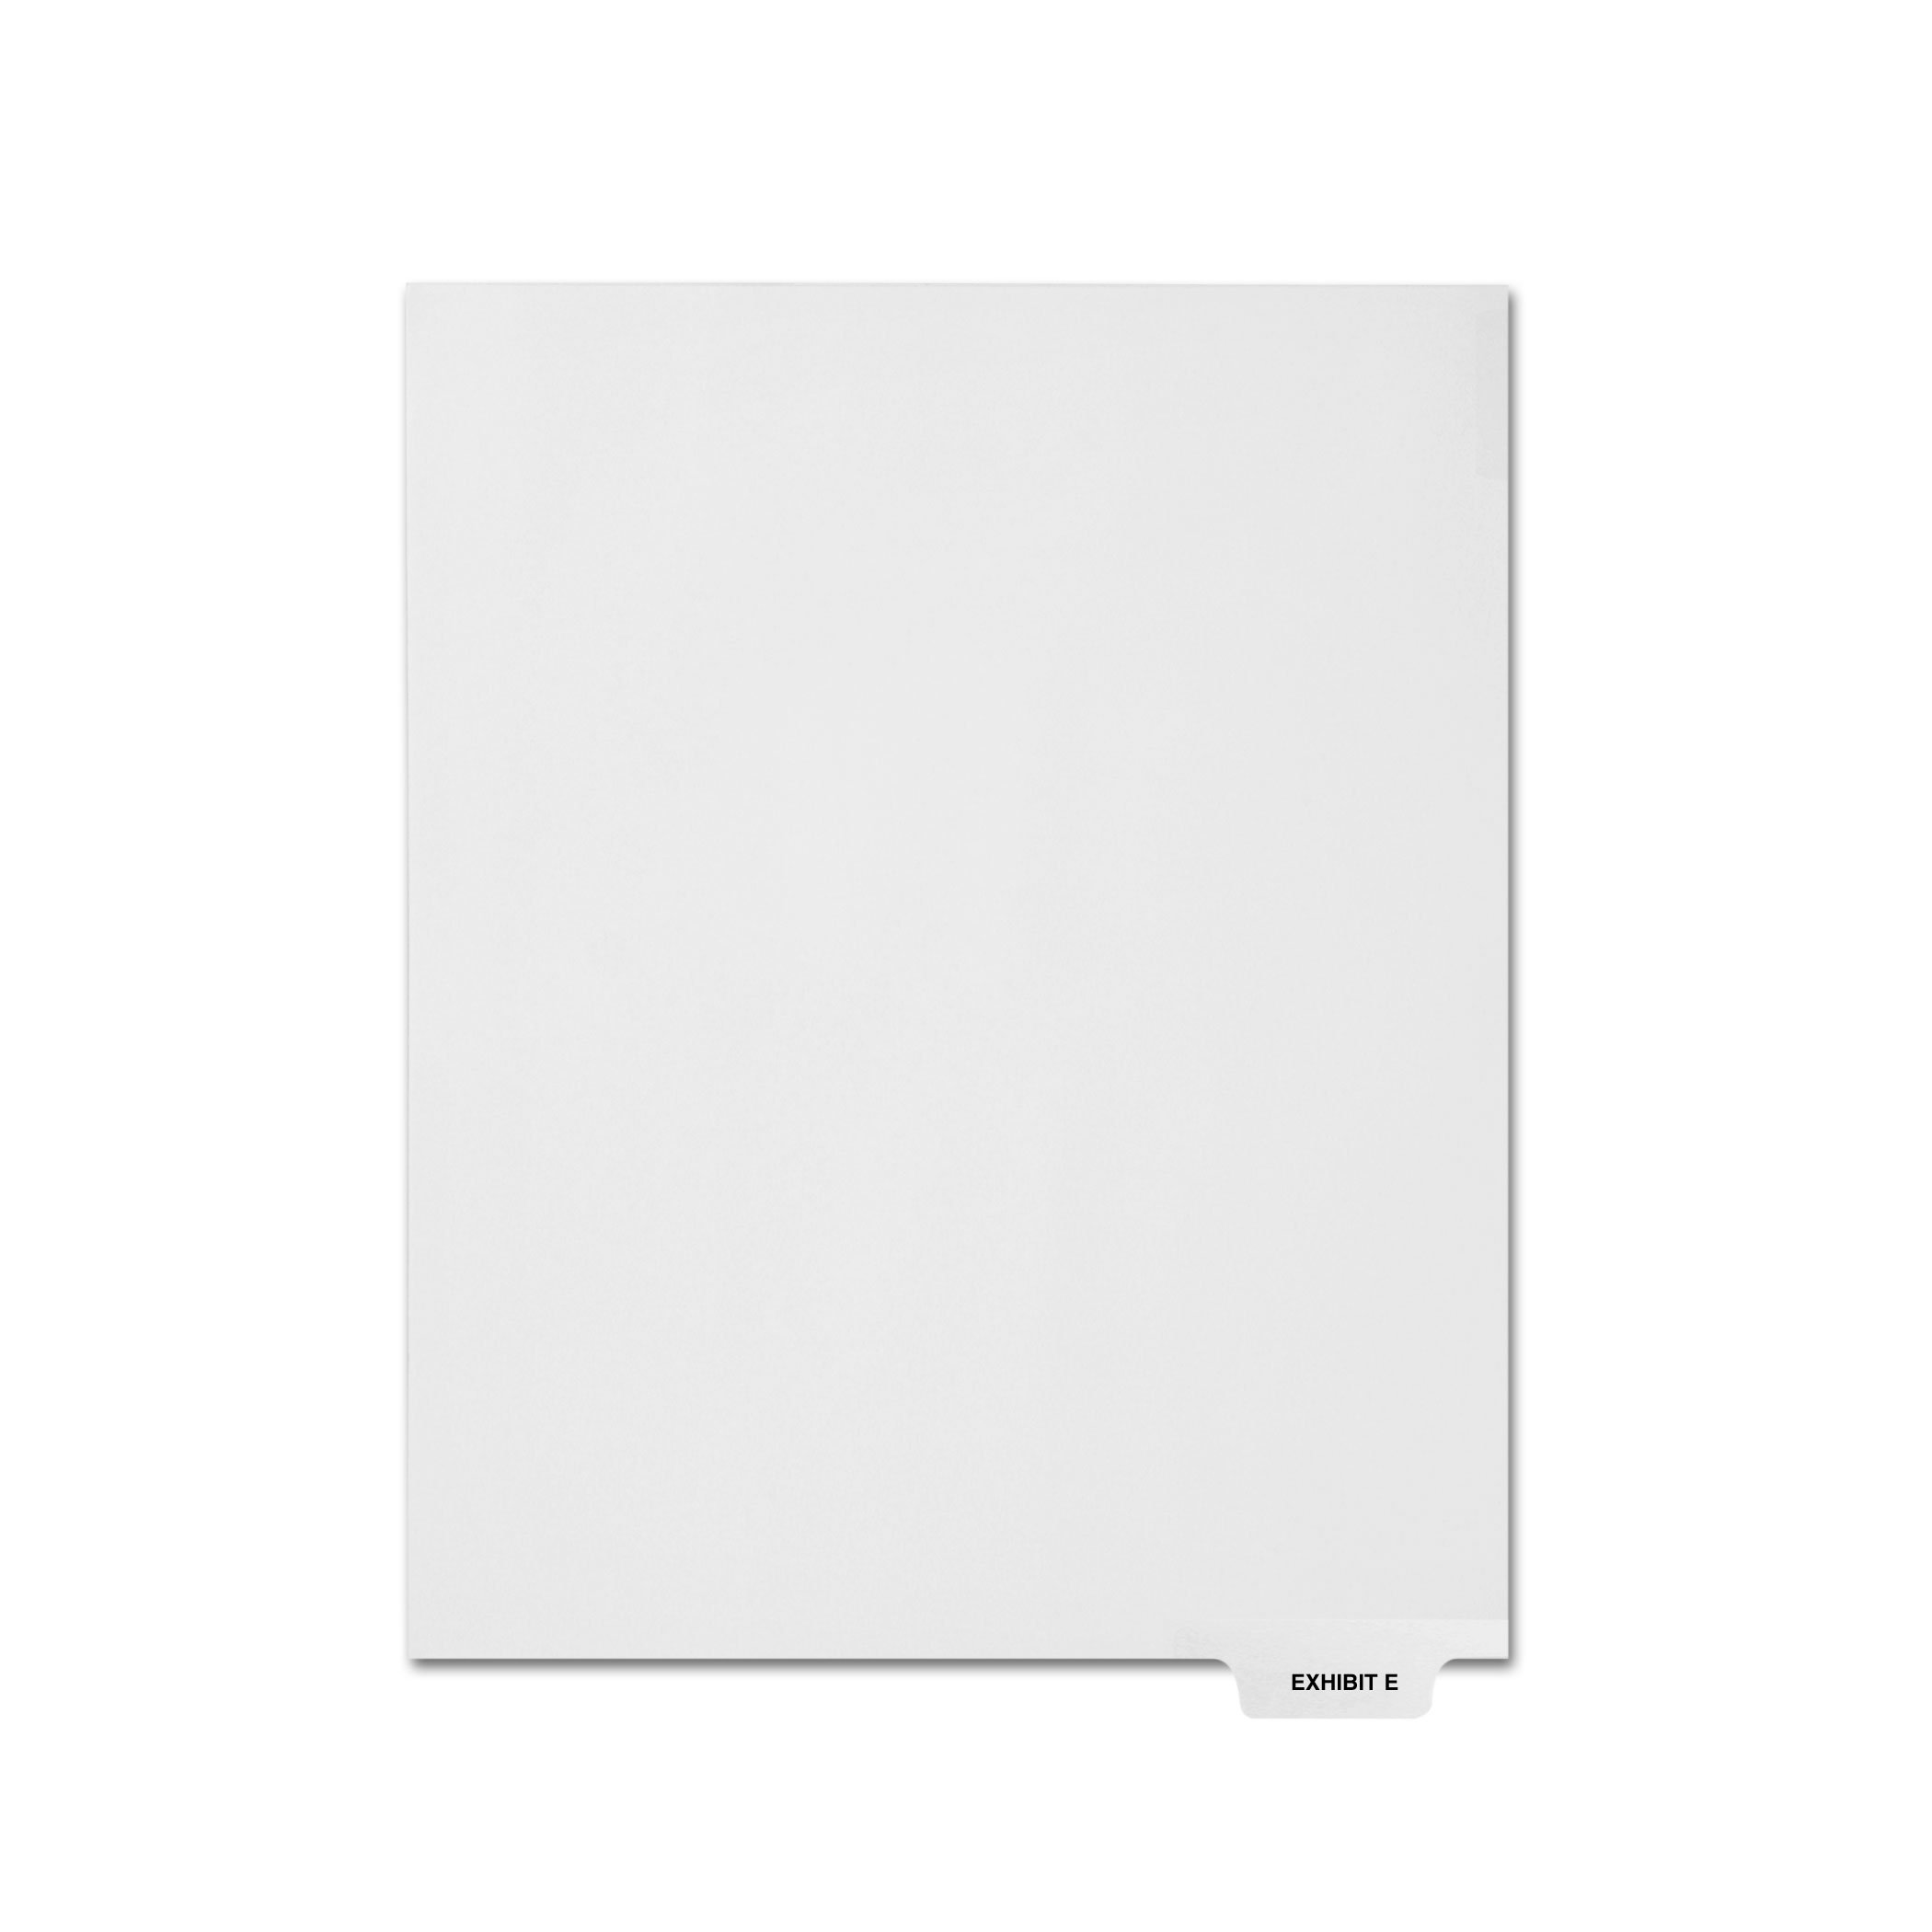 AMZfiling Individual Legal Index Tab Dividers, Compatible with Avery- Exhibit E, Bottom Tabs, Letter Size, White, Position 5 (25 Sheets/pkg)